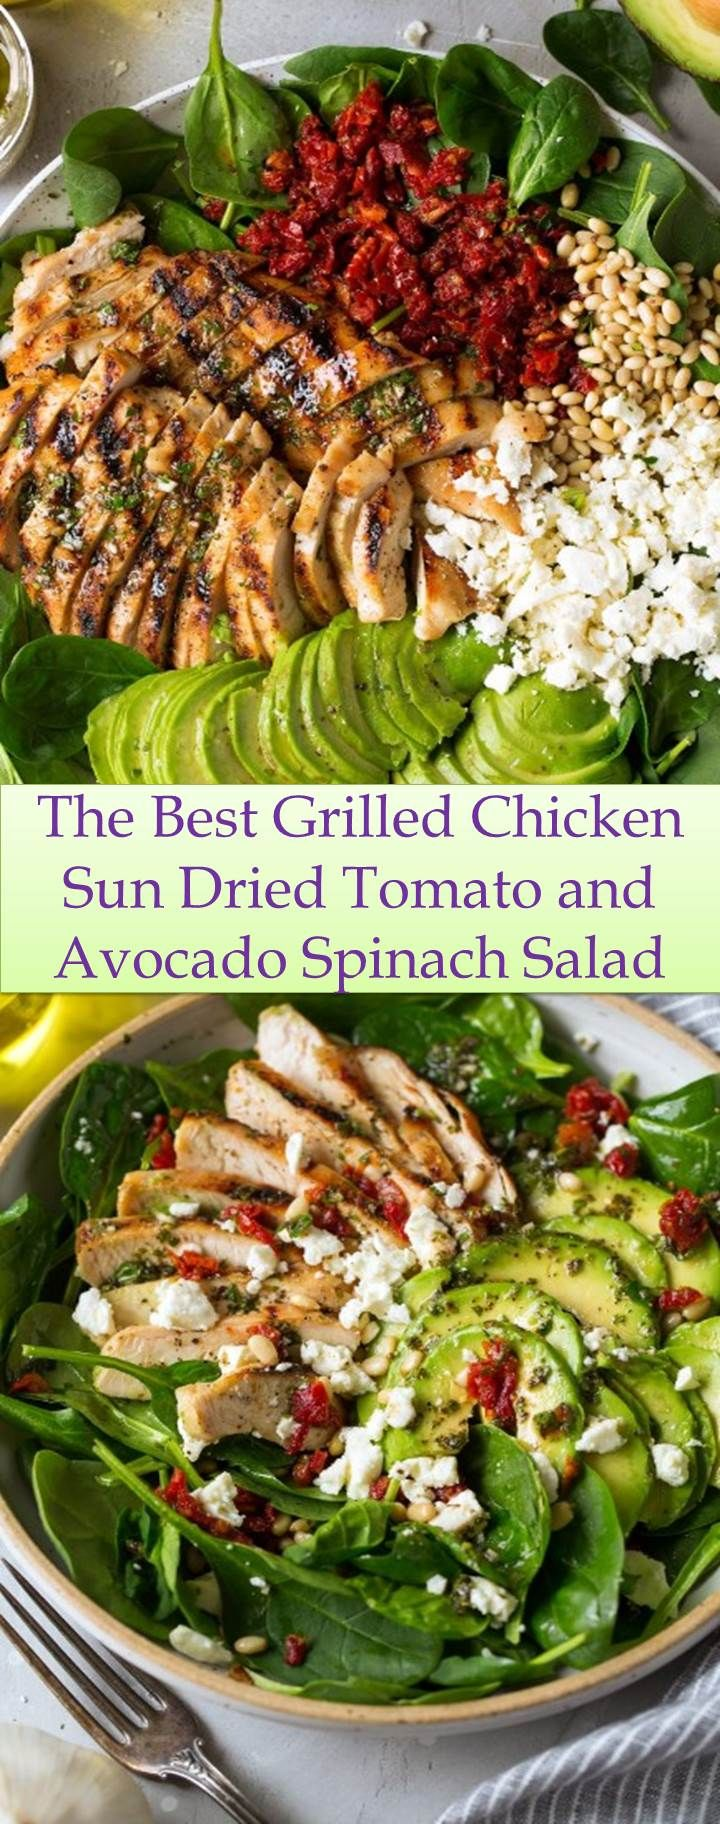 ★★★★★ 933 Reviews : #Best #Grilled #Chicken #Sun #Dried #Tomato